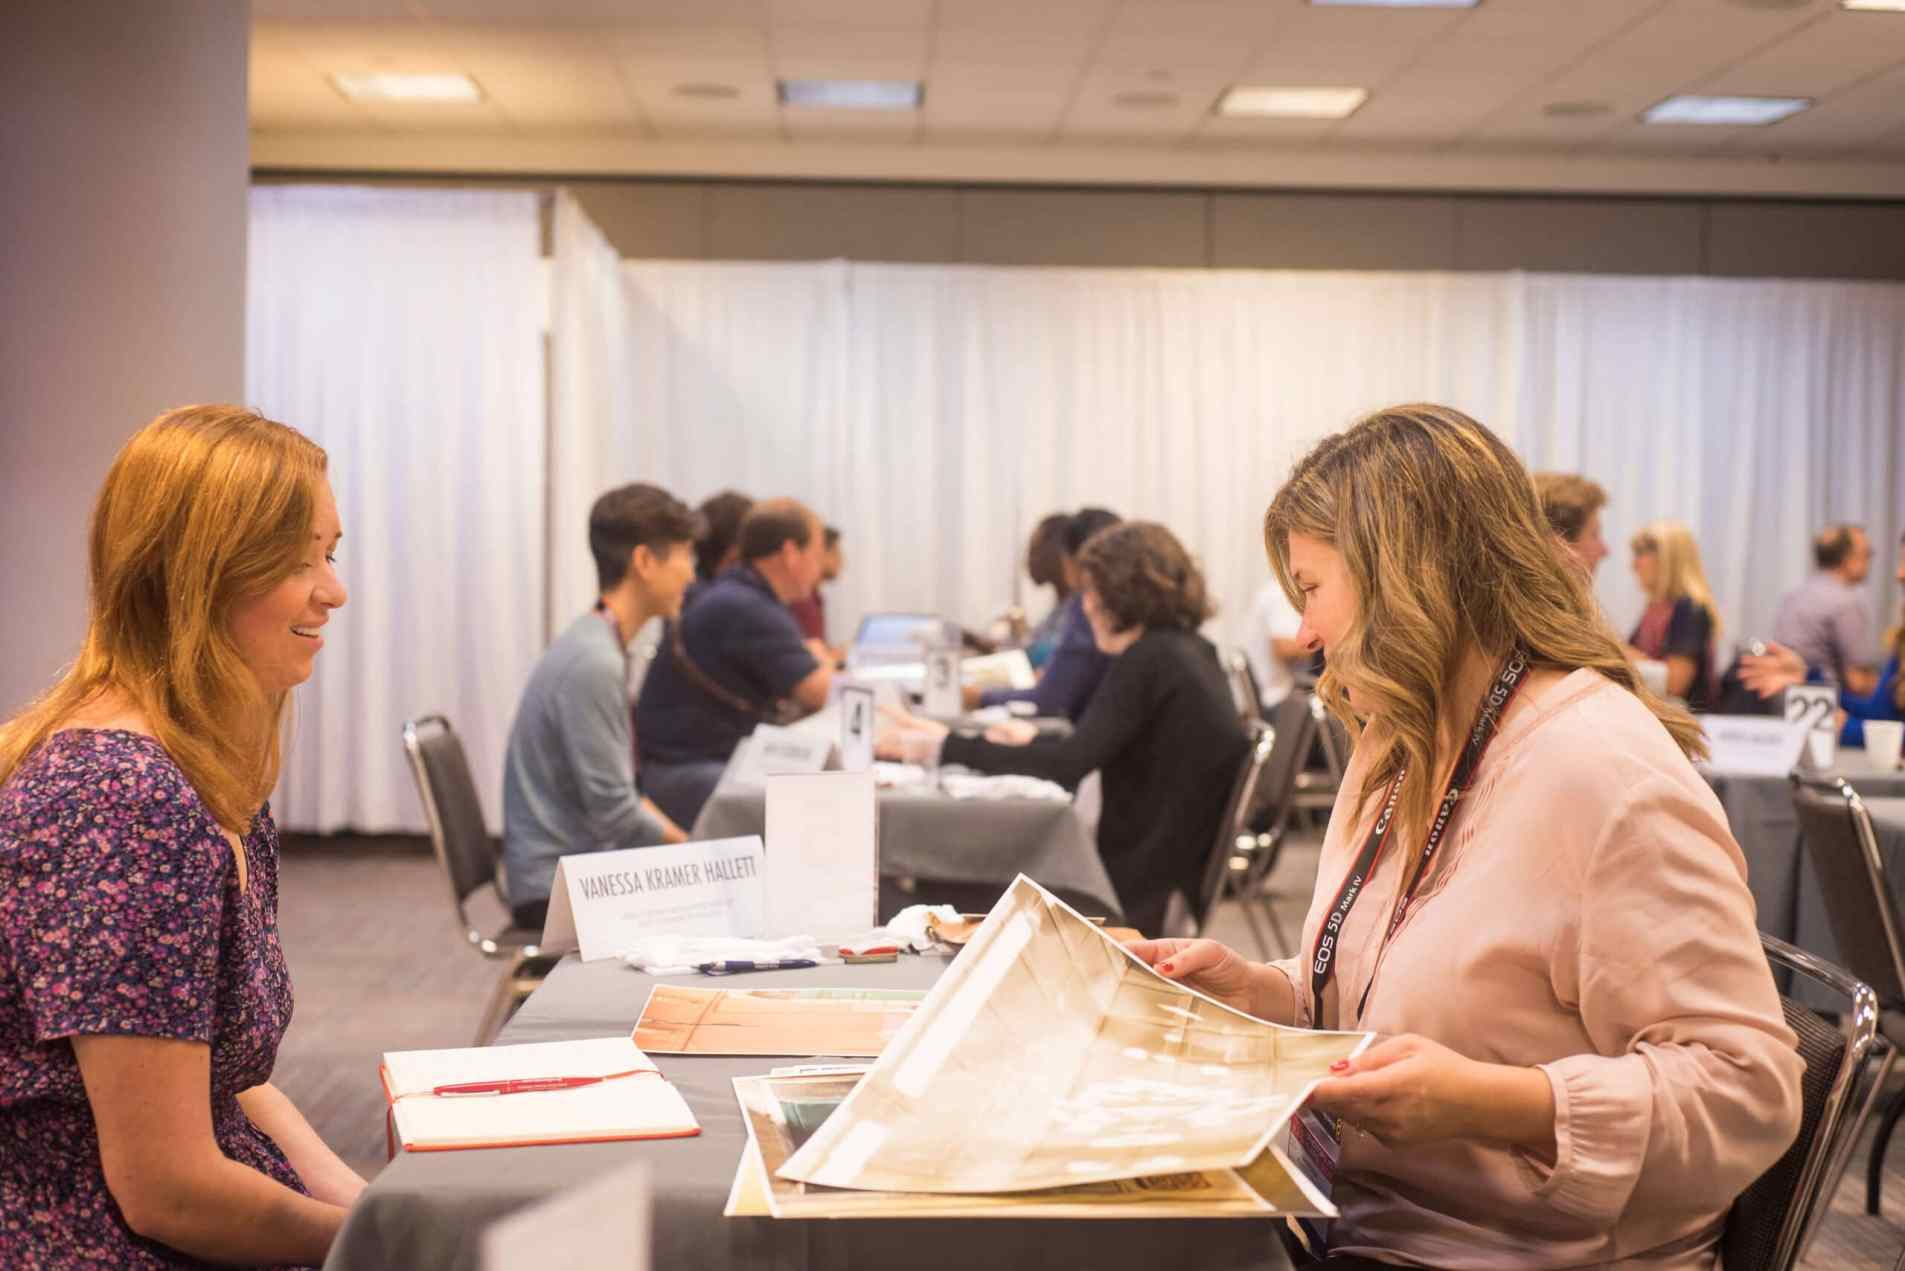 PPE Taking notes -Photo Plus Expo: X Reasons You Should go if You Love Photography